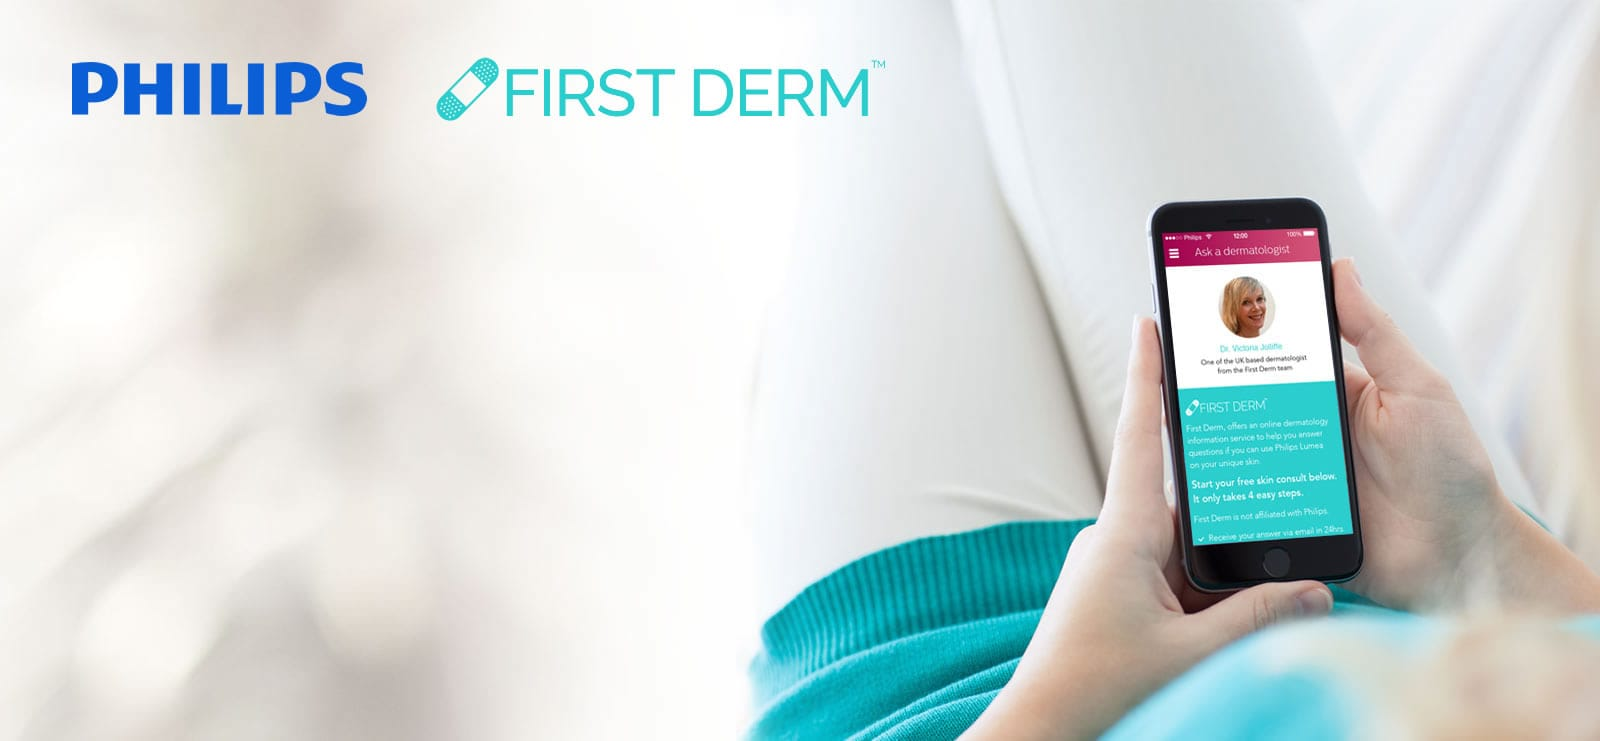 First Derm partners with Philips to deliver a customer online dermatology  service